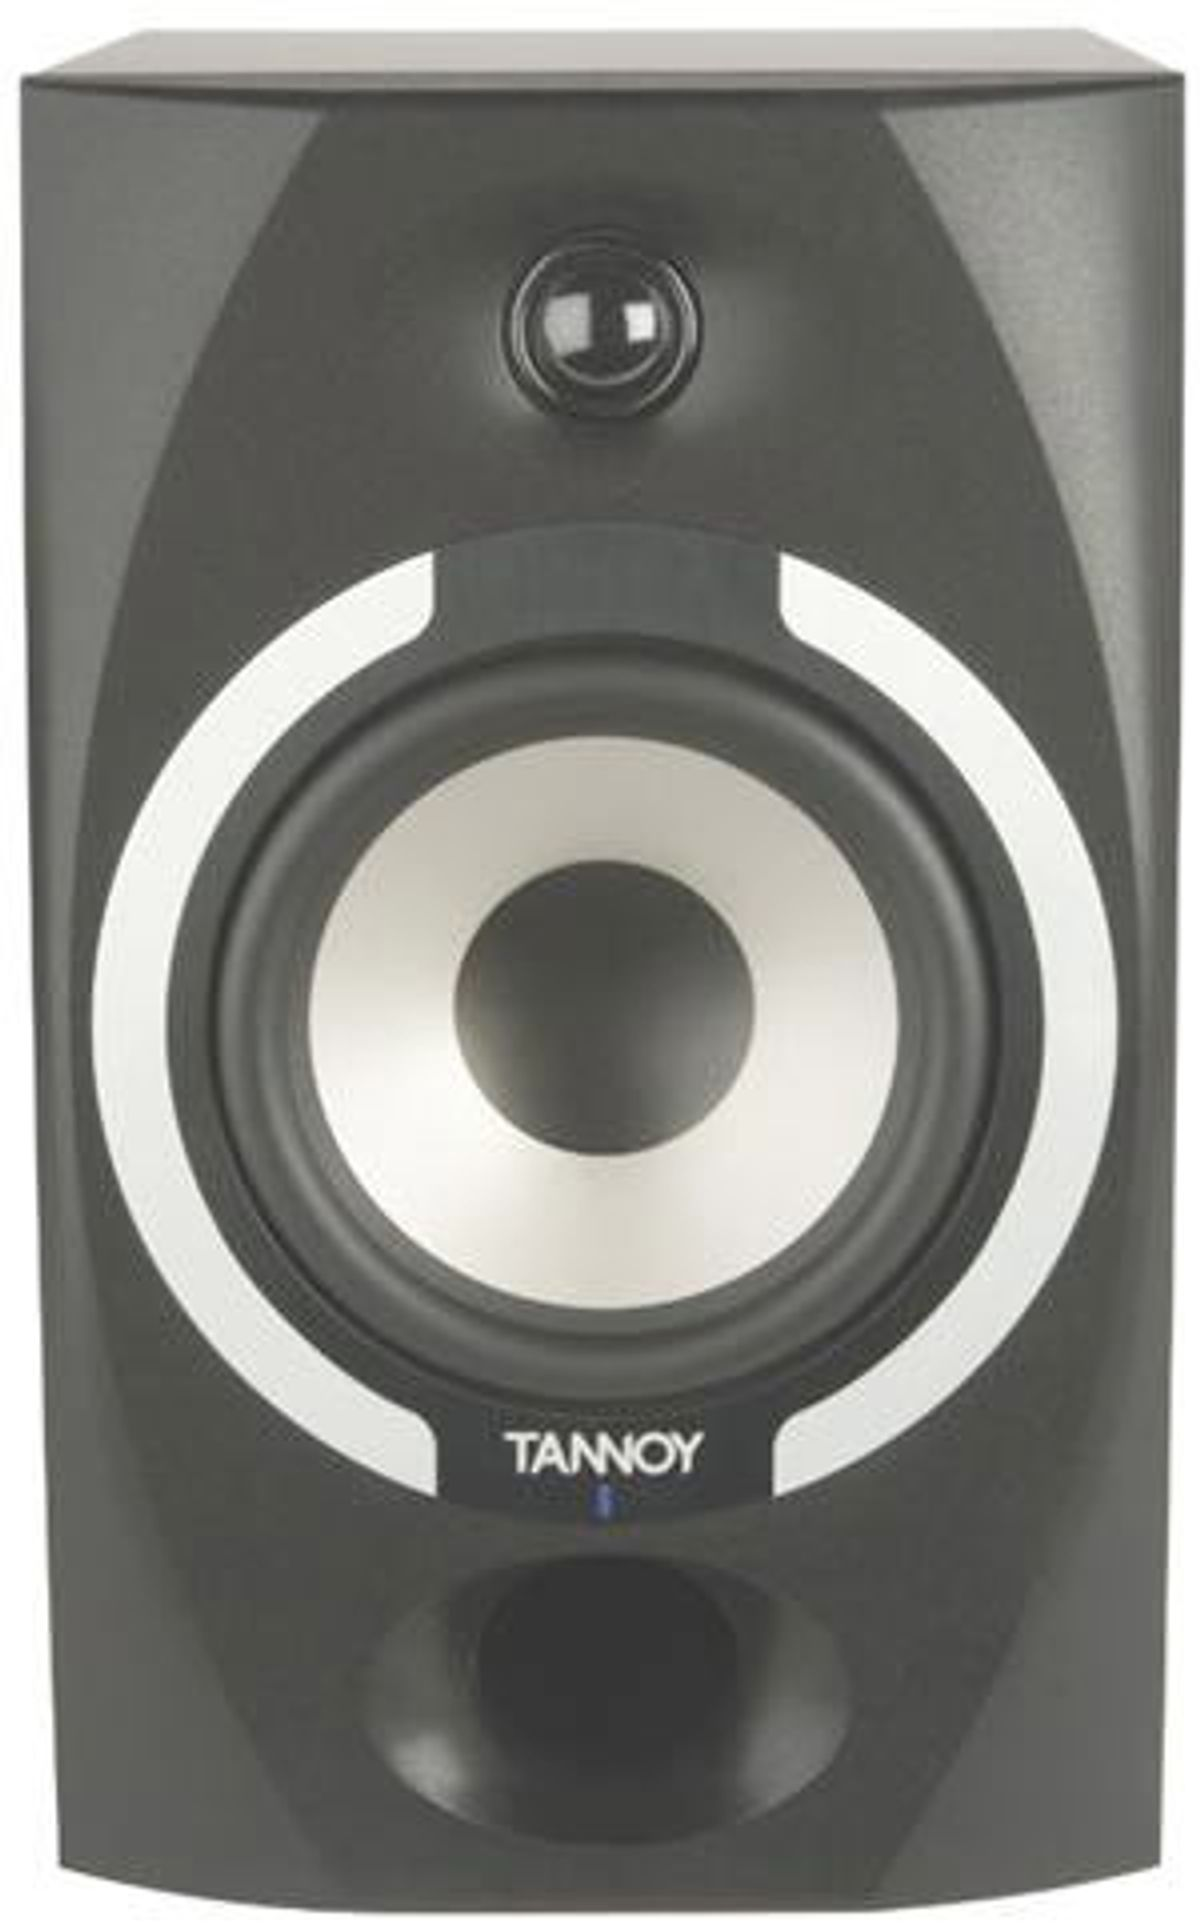 Tannoy Announces Reveal Series 501a and 601a Monitors